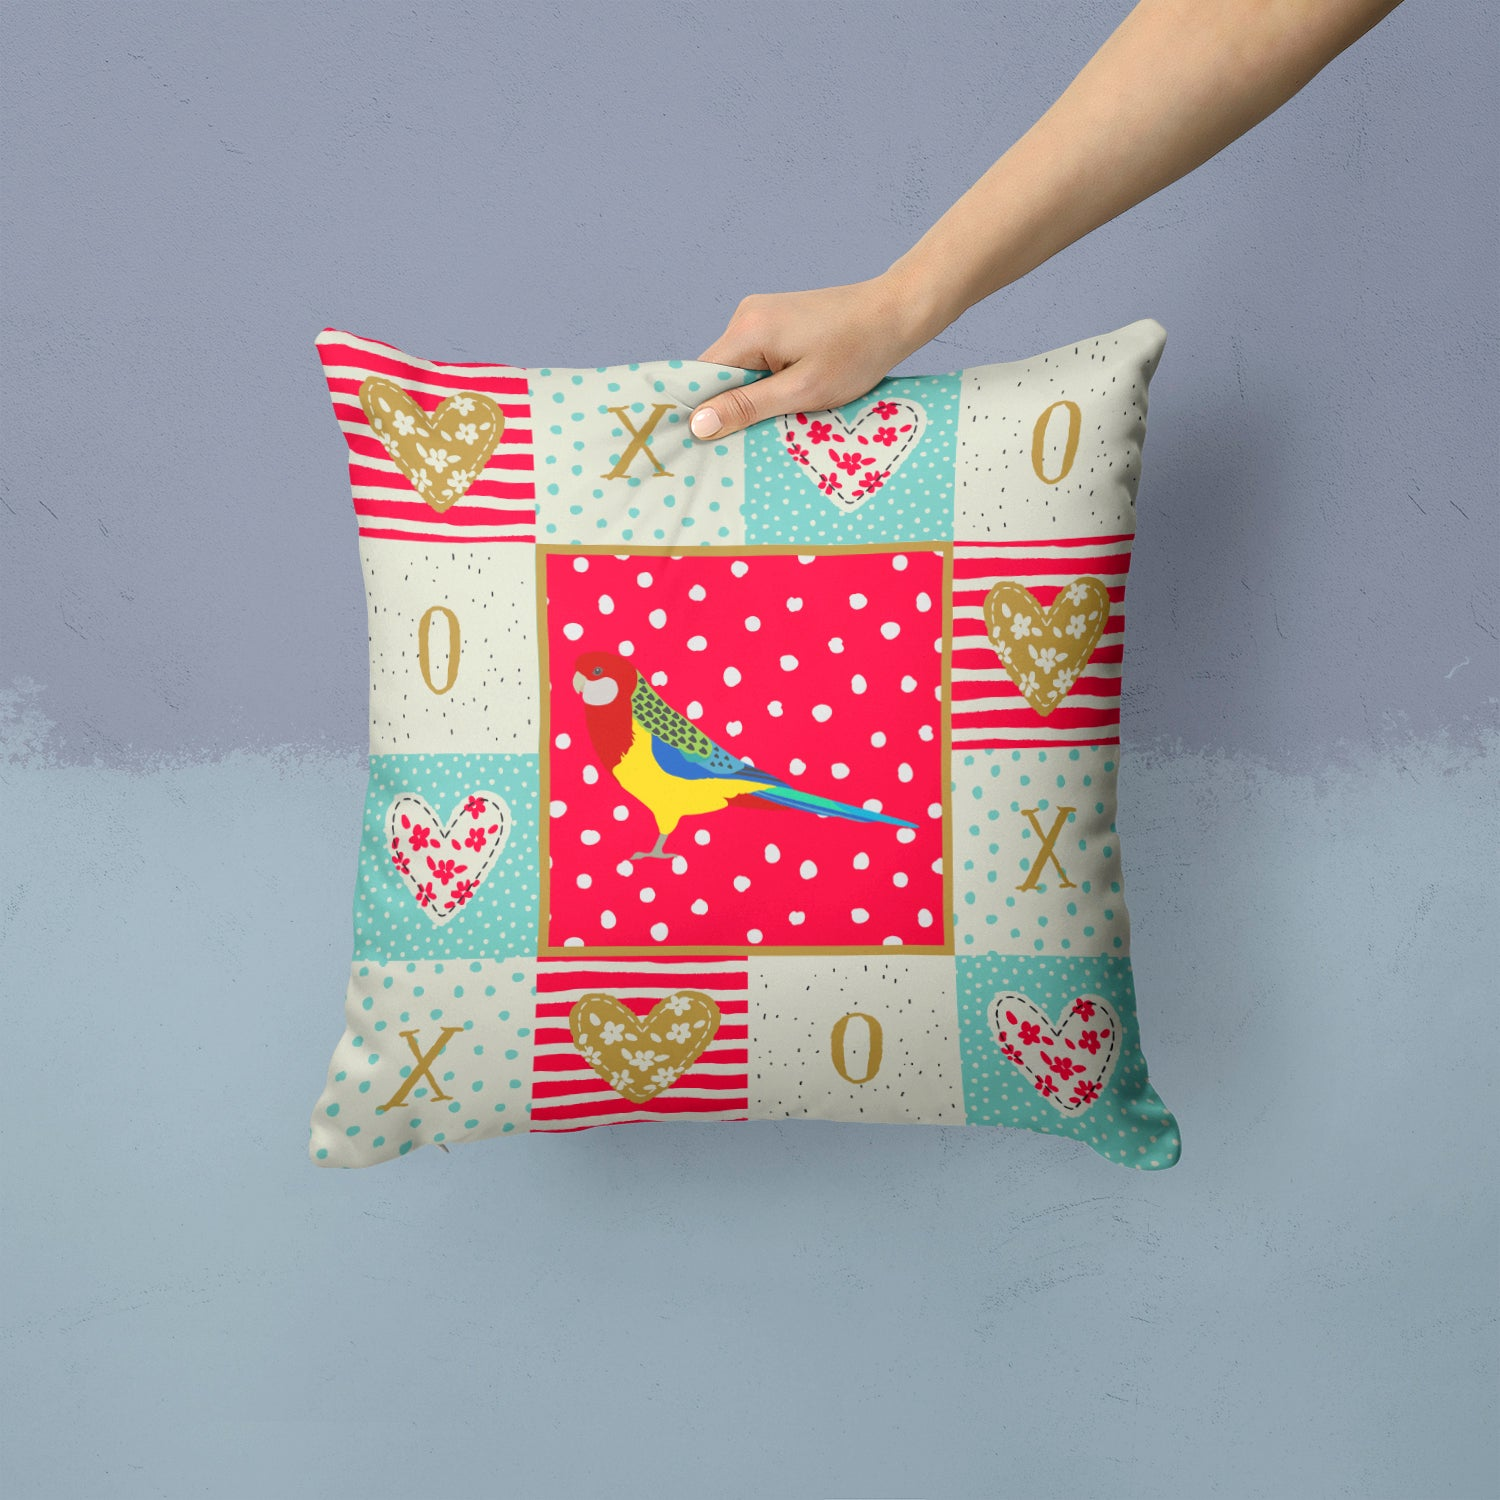 Rosella Love Fabric Decorative Pillow CK5526PW1414 by Caroline's Treasures